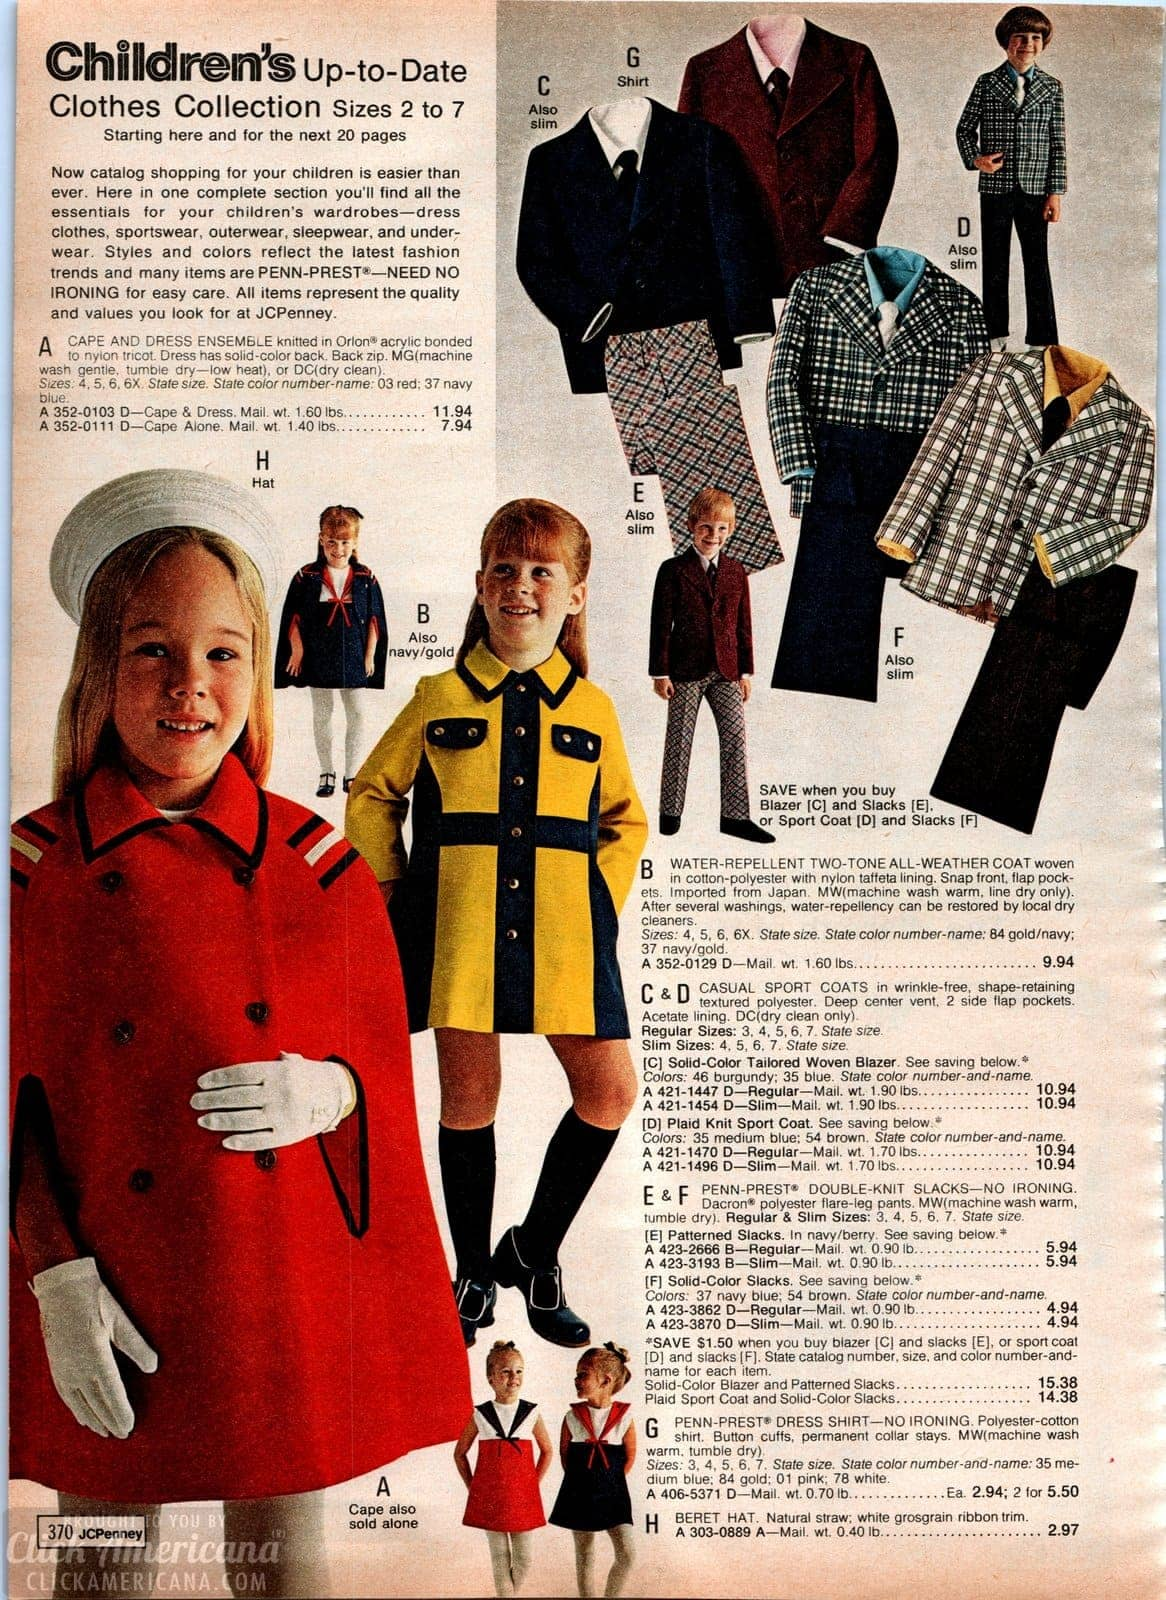 Dressy jackets and capes for girls - blazers and coats for boys - from 1973